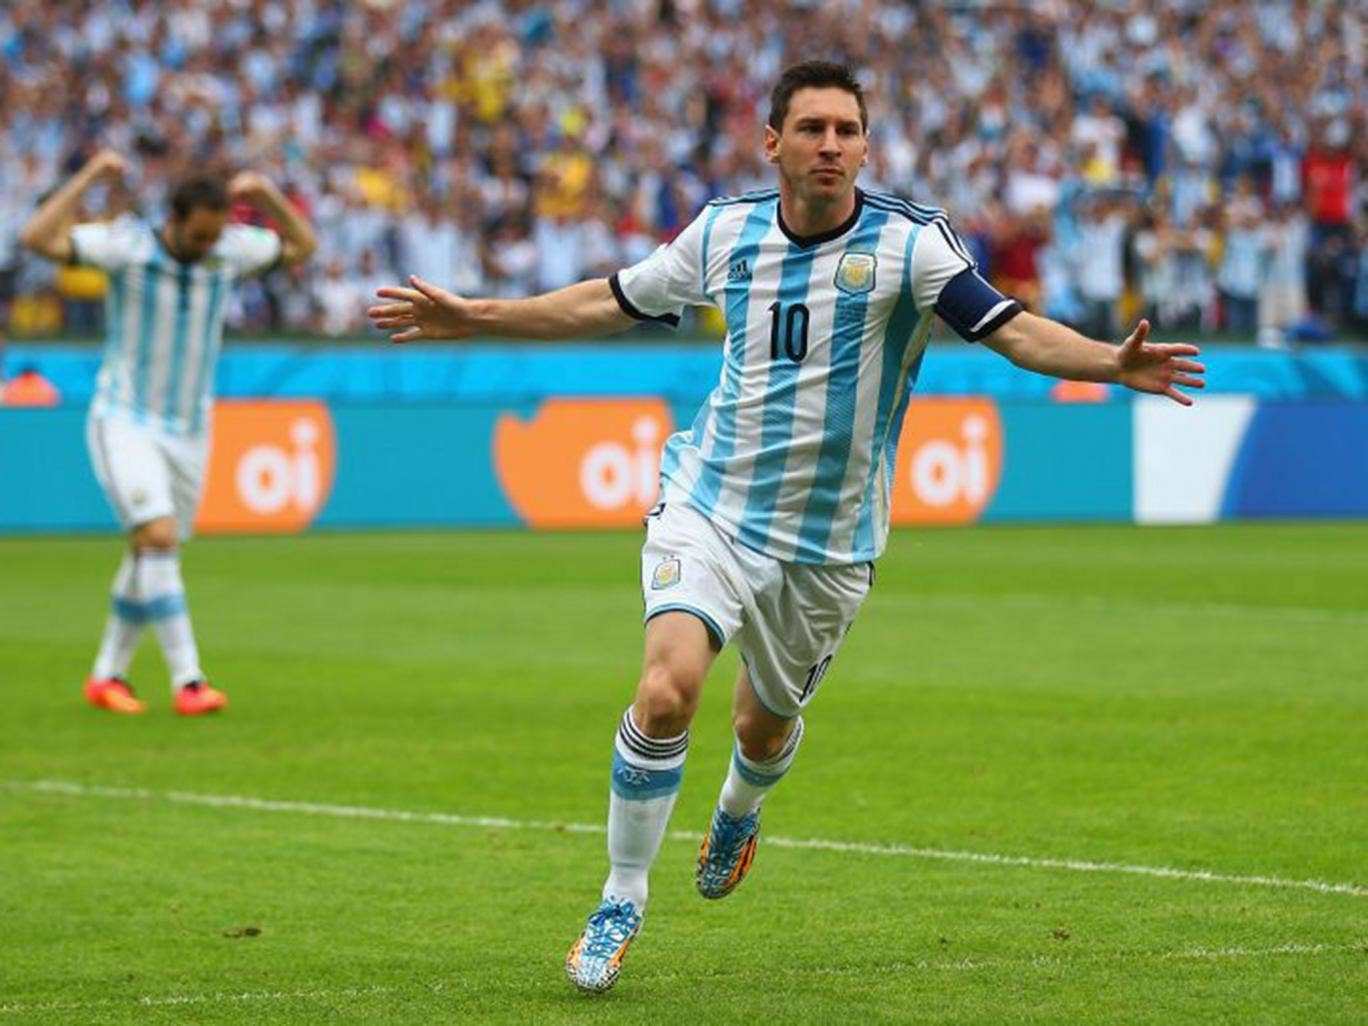 Lionel Messi celebrates putting Argentina ahead in the 3rd minute of their final group game with Nigeria